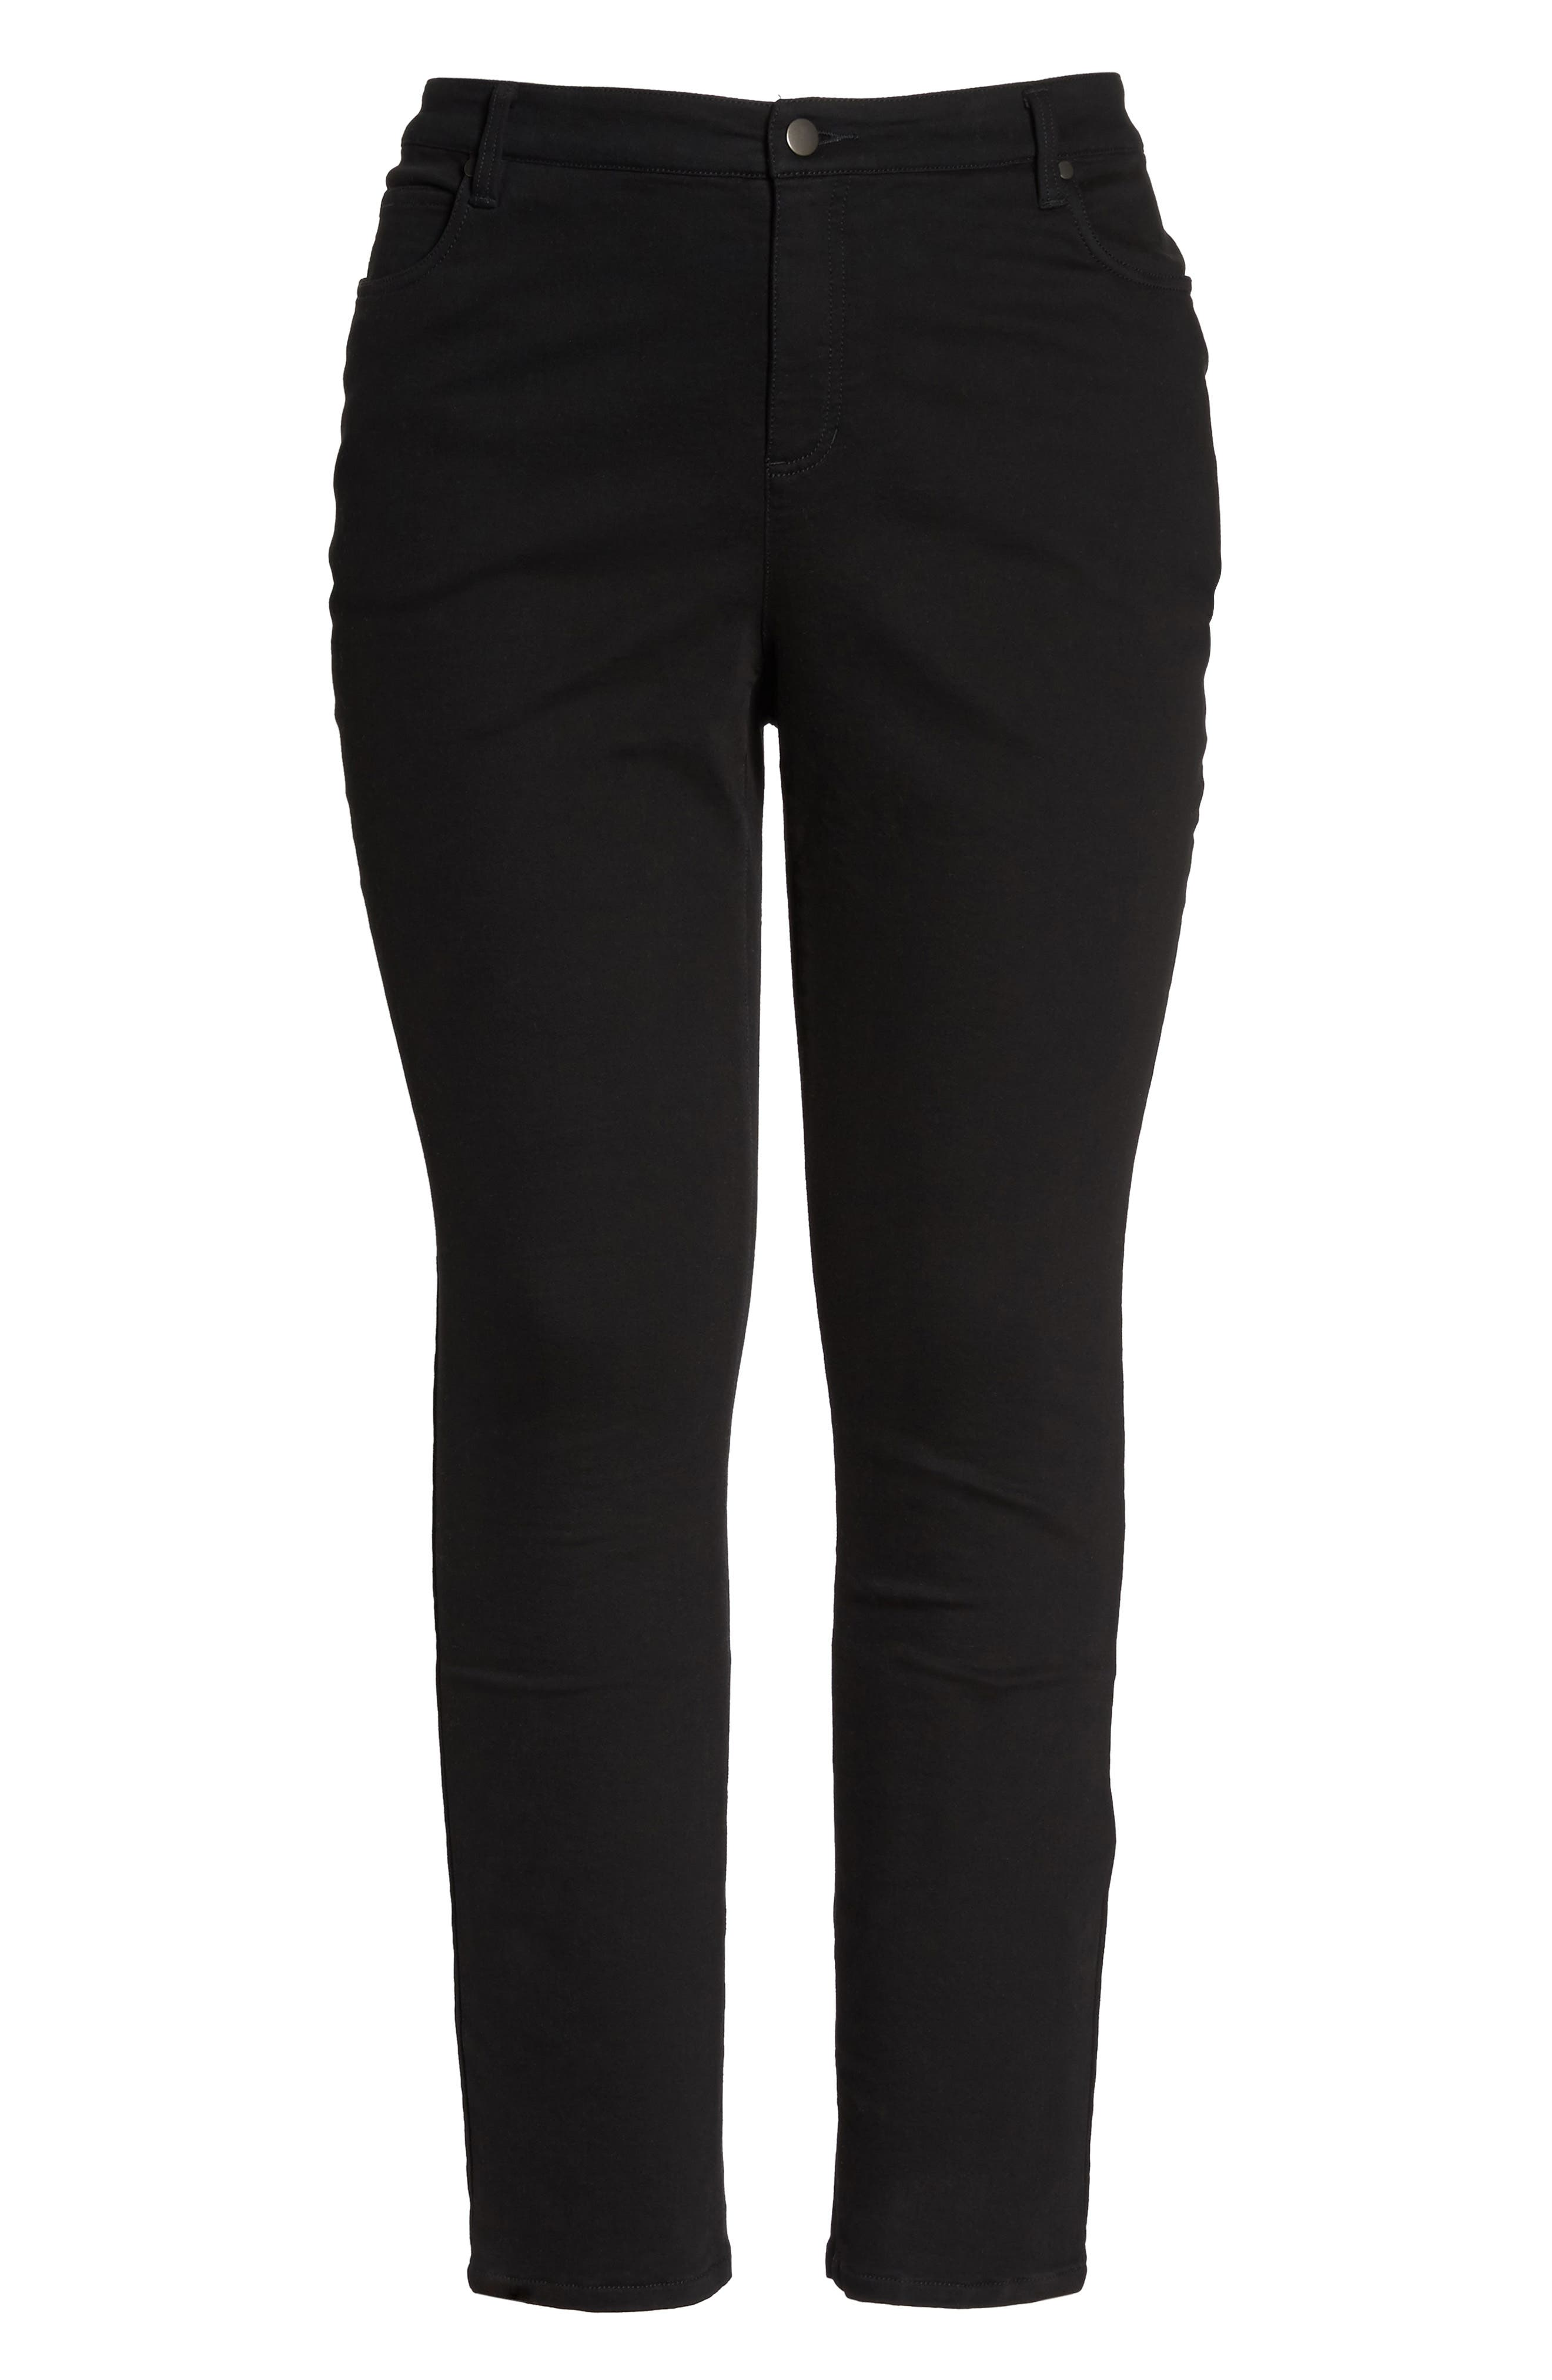 Organic Cotton Skinny Stretch Jeans,                             Alternate thumbnail 6, color,